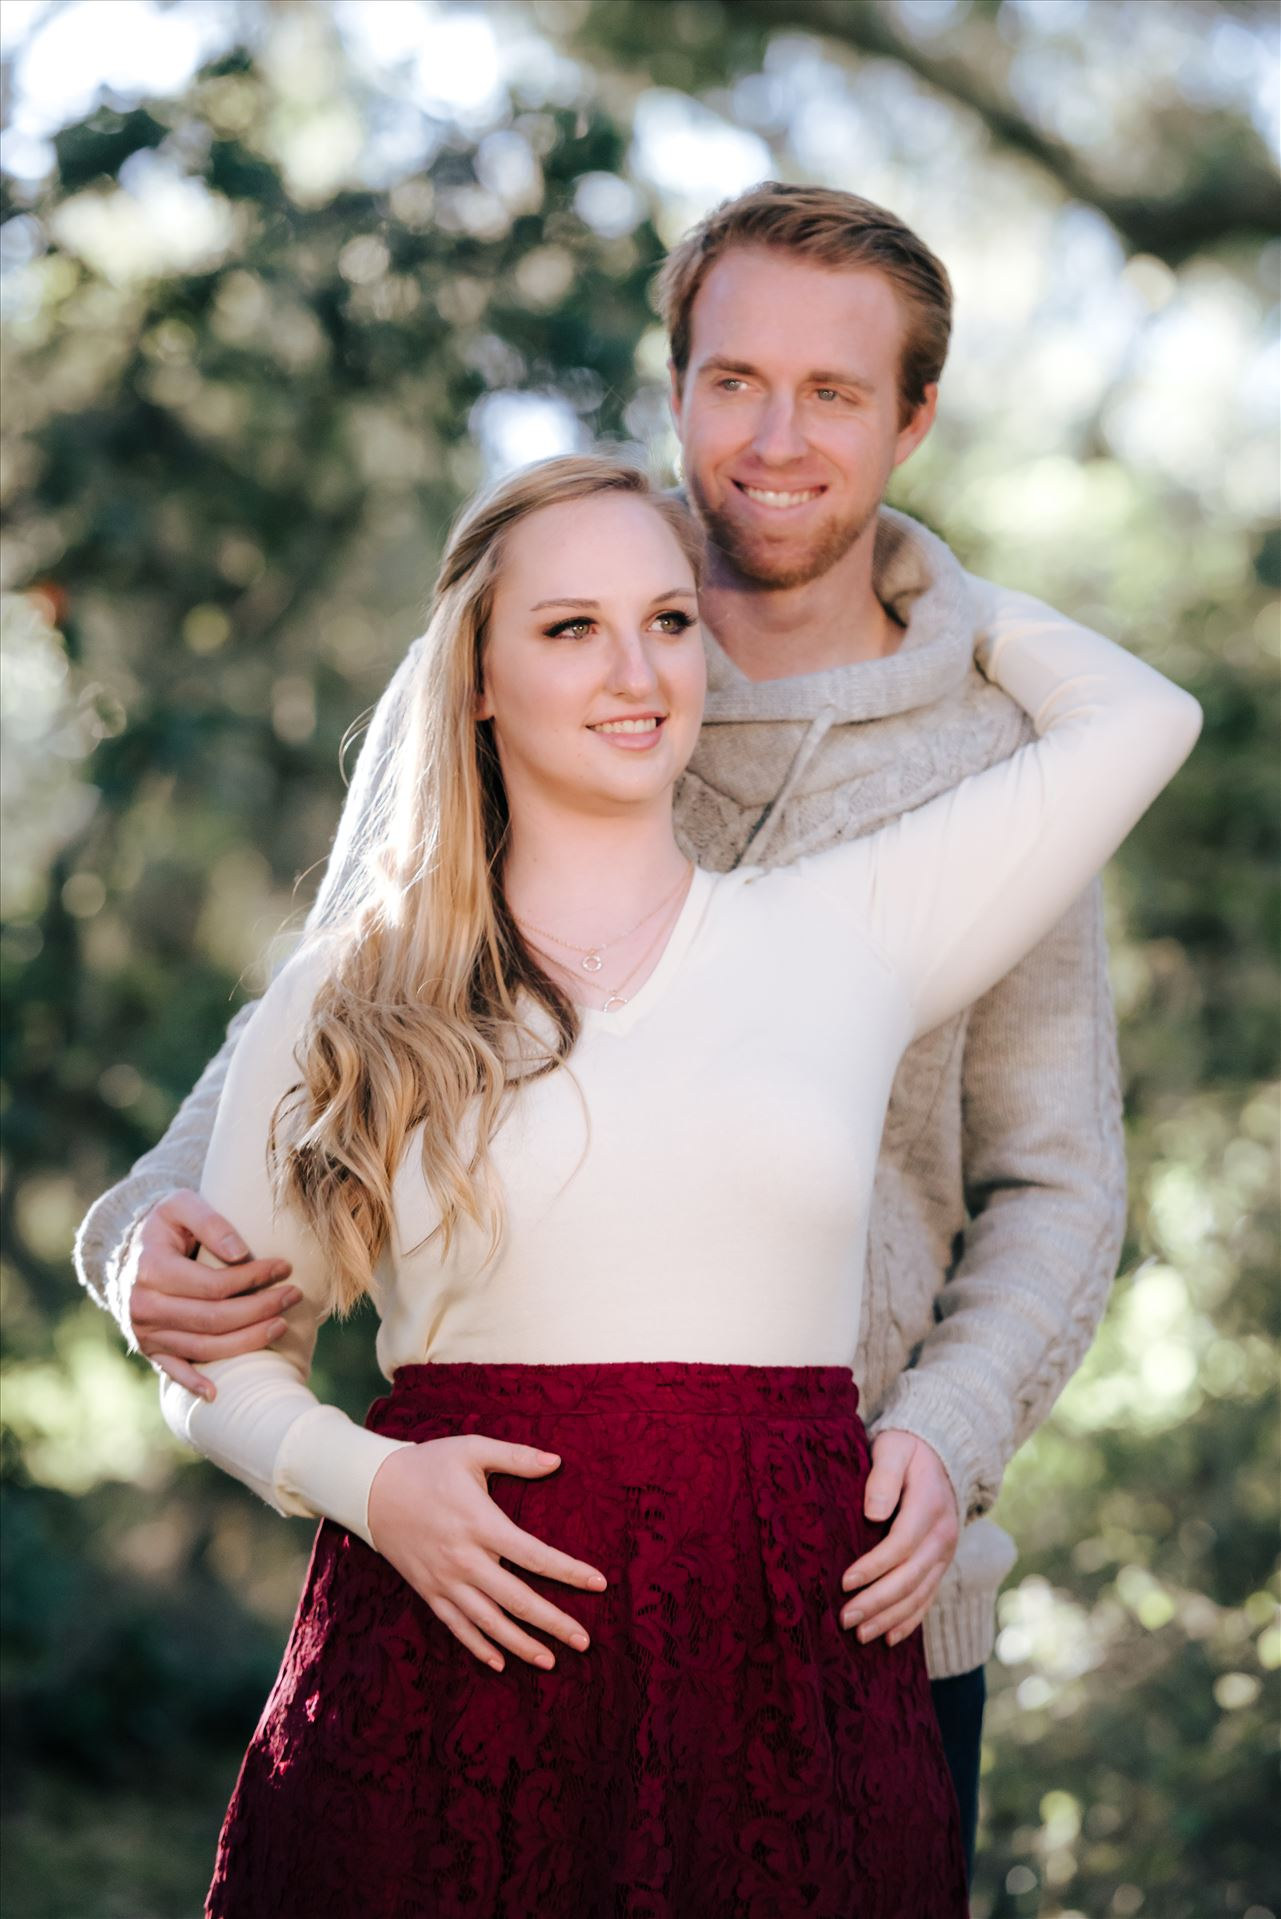 DSC_3303.JPG Mirror's Edge Photography captures CiCi and Rocky's Sunrise Engagement in Los Osos California at Los Osos Oaks Reserve. Gorgeous love by Sarah Williams